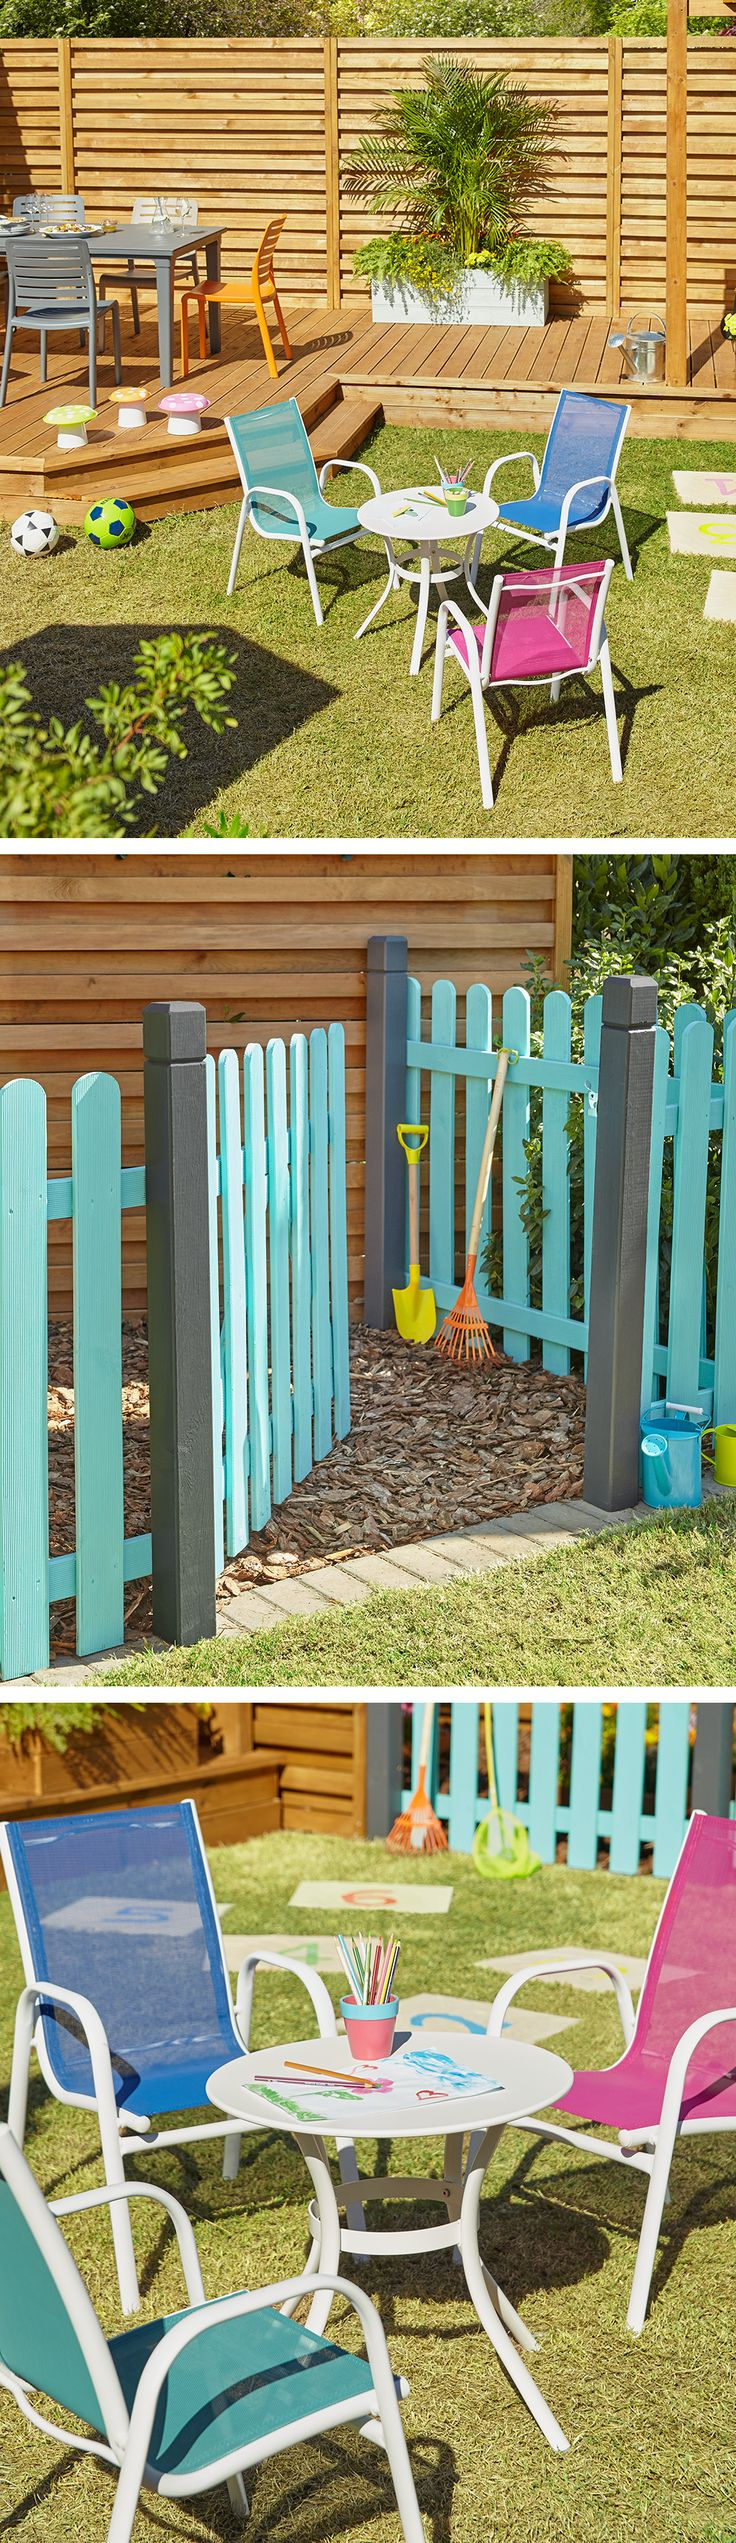 paint fences bright colours to section off a childrens area in your garden add some